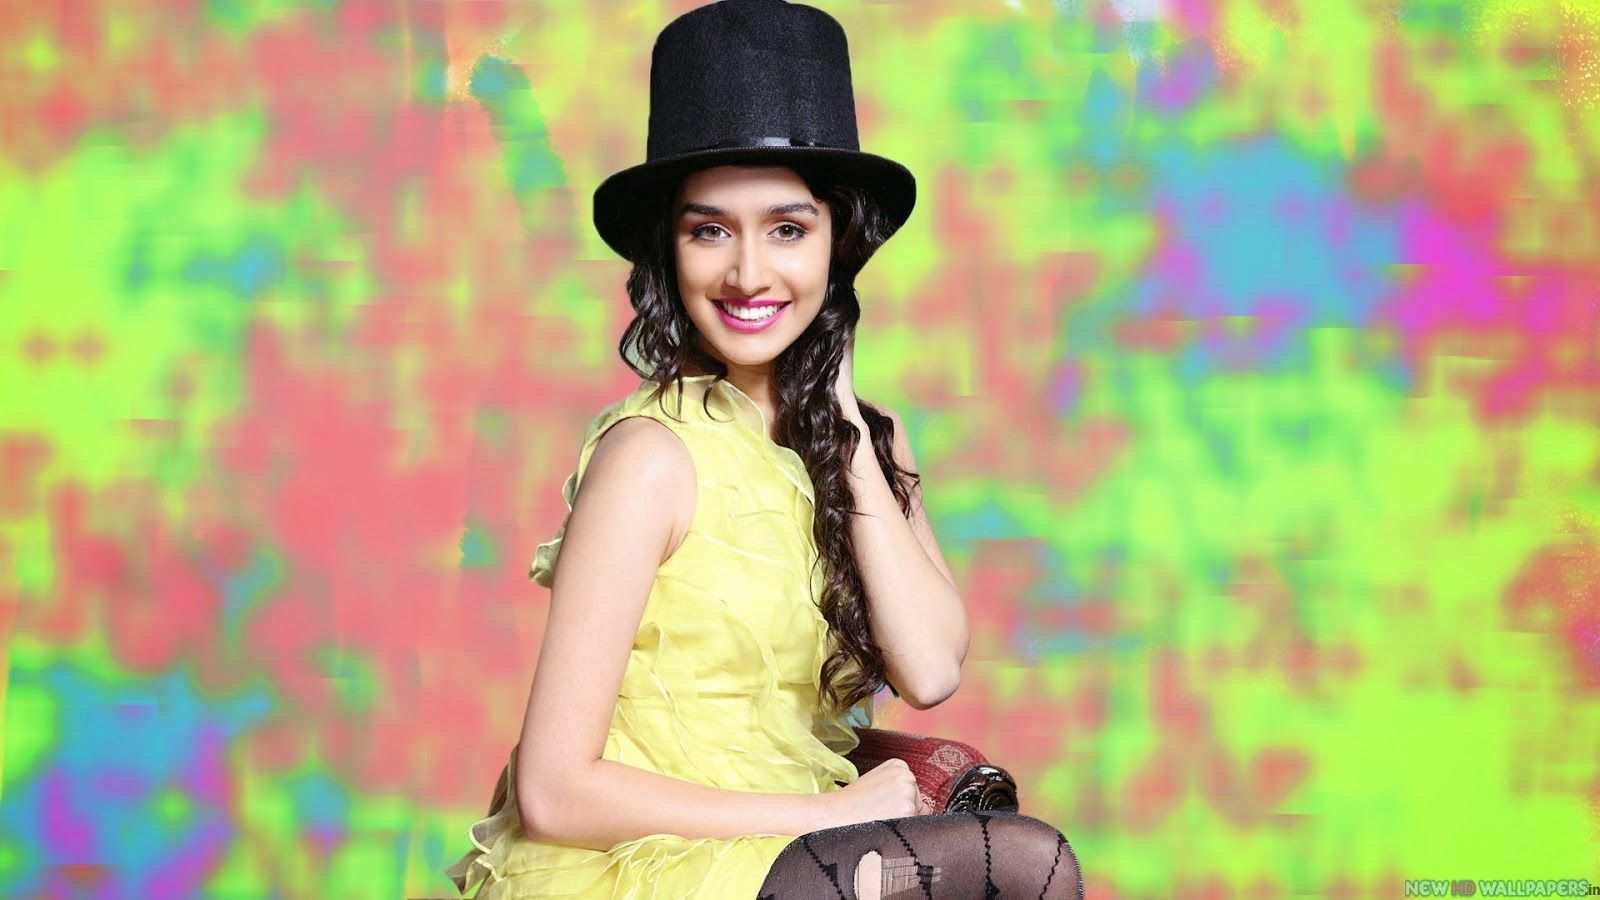 Shraddha Kapoor Hd Wallpapers Shraddha Kapoor Pictures Hd Photos